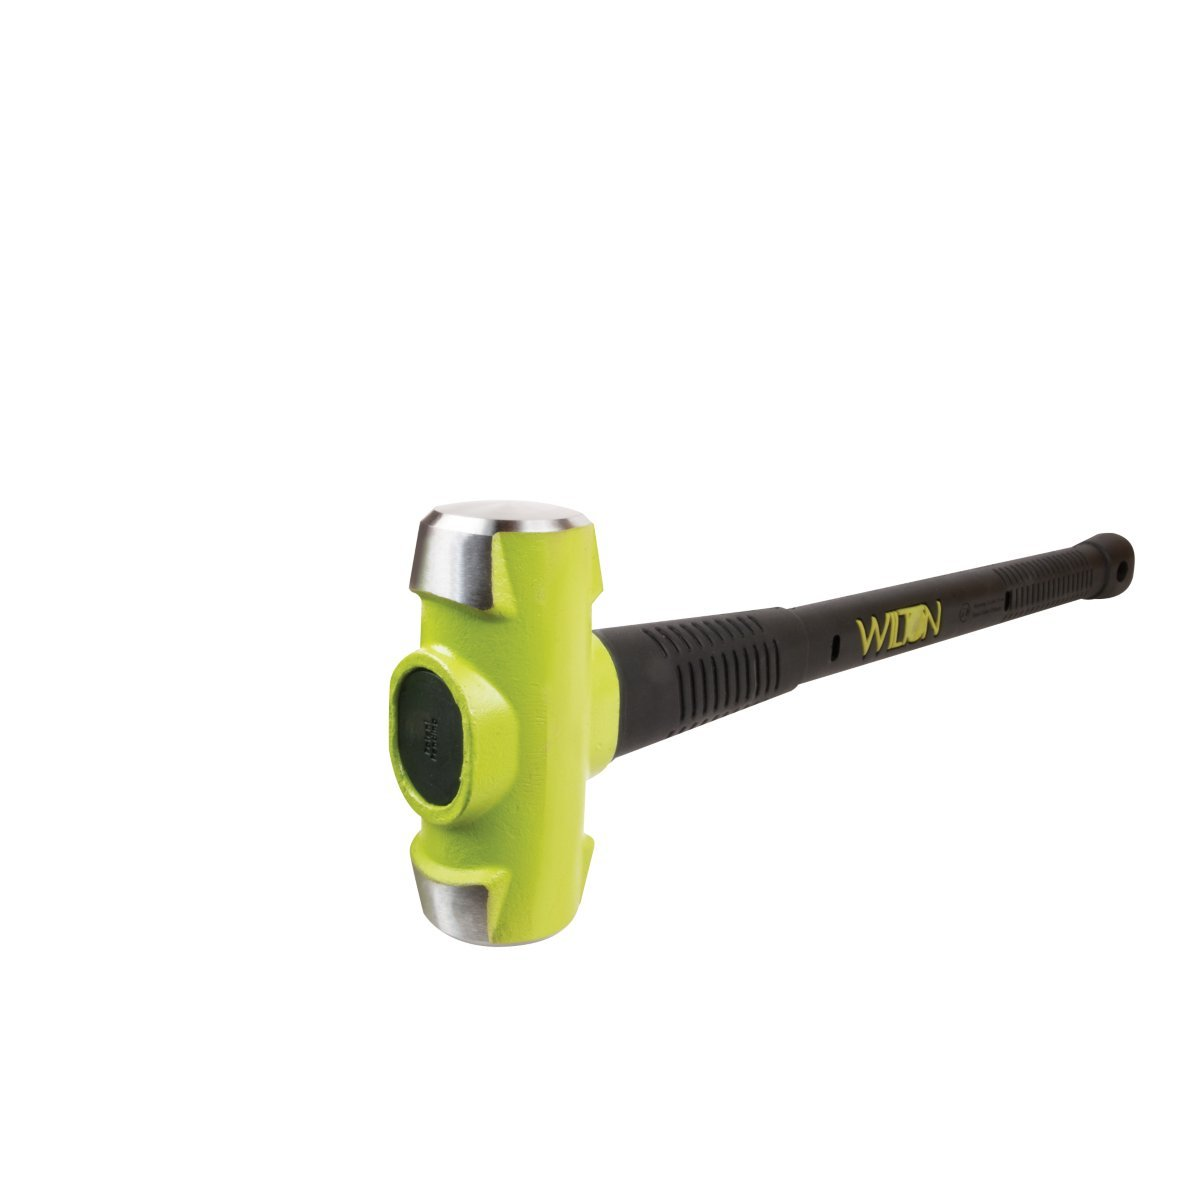 Wilton 20636 6 lbs. BASH Sledge Hammer with 36-in Unbreakable Handle